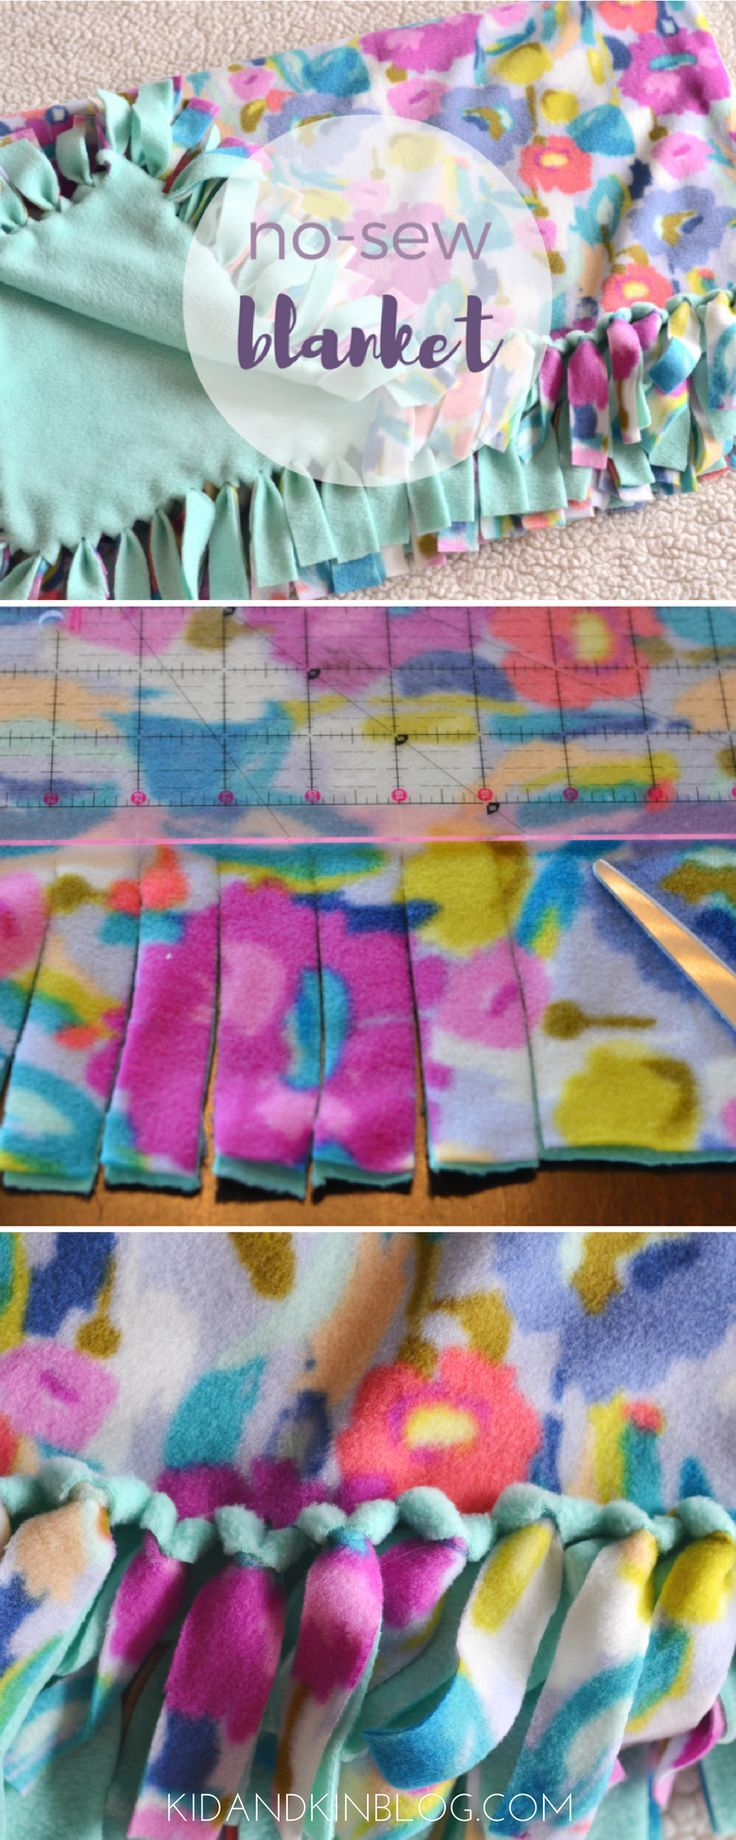 Nosew blanket tutorial first action in our kind kids club gather